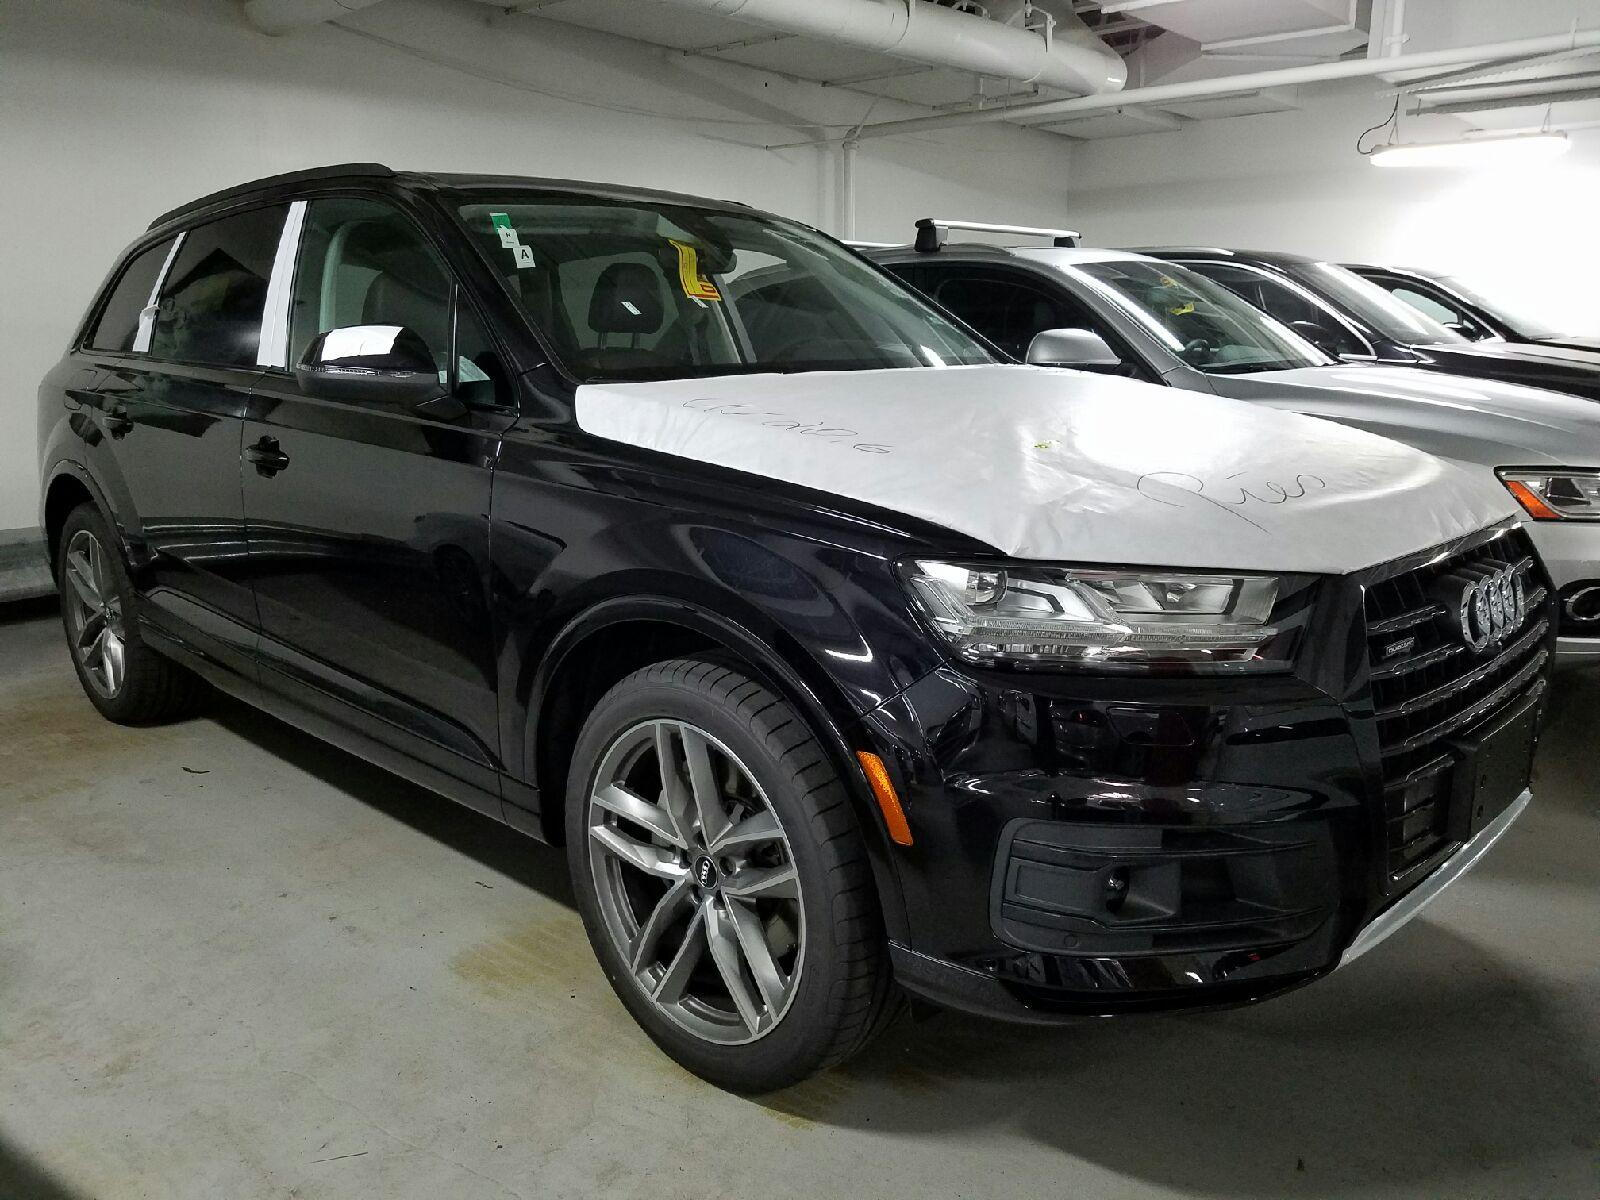 2017 Q7 Black Optic Package - Page 10 - AudiWorld Forums